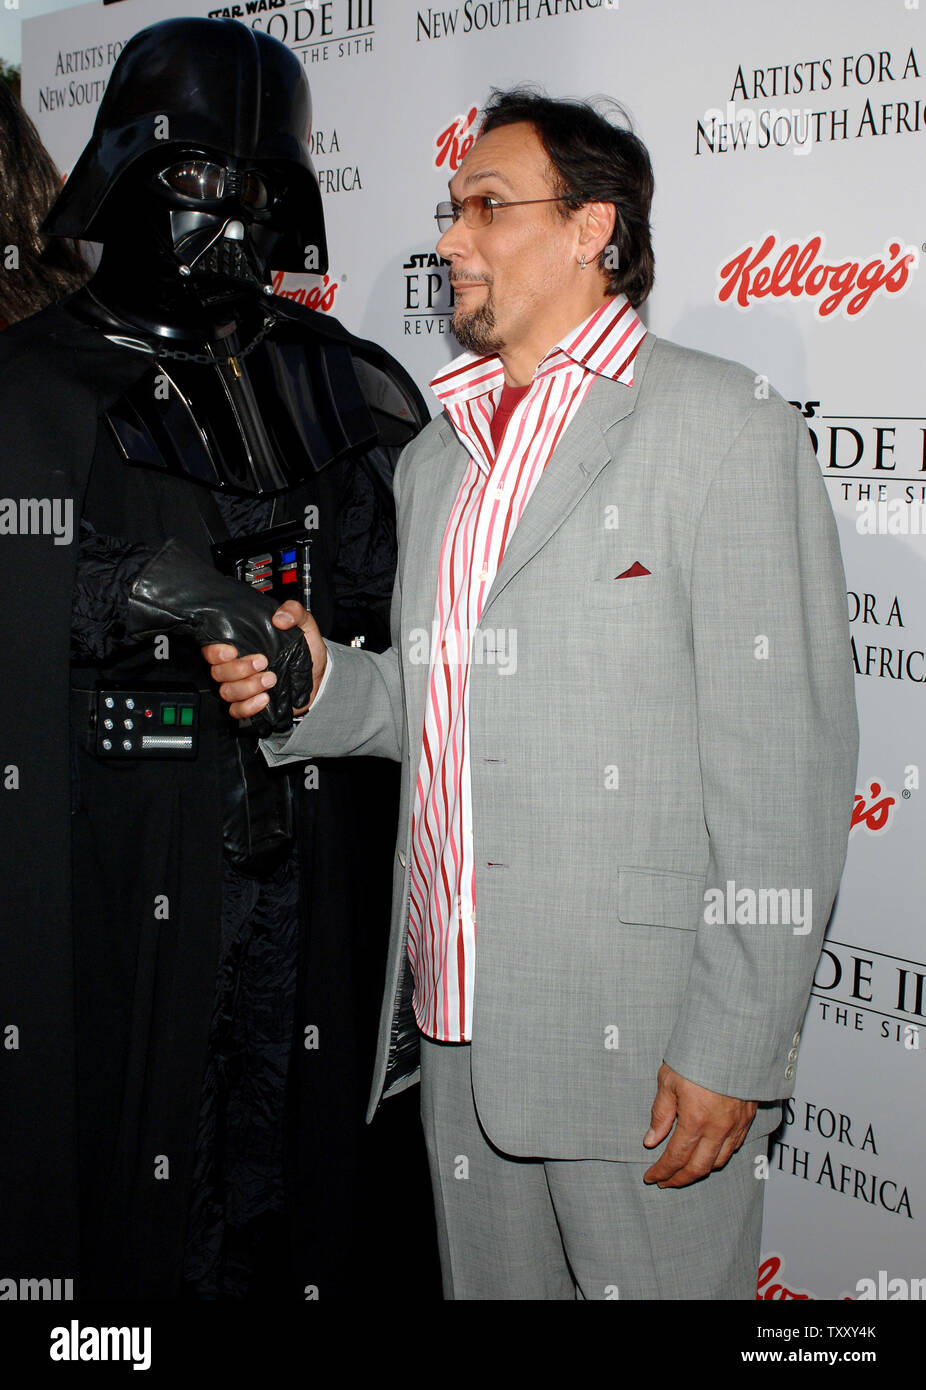 U S Actor Jimmy Smits Who Plays Senator Bail Organa Greets A Darth Vader Character As He Arrives For The Premiere Of Star Wars Episode Iii Revenge Of The Sith In Los Angeles